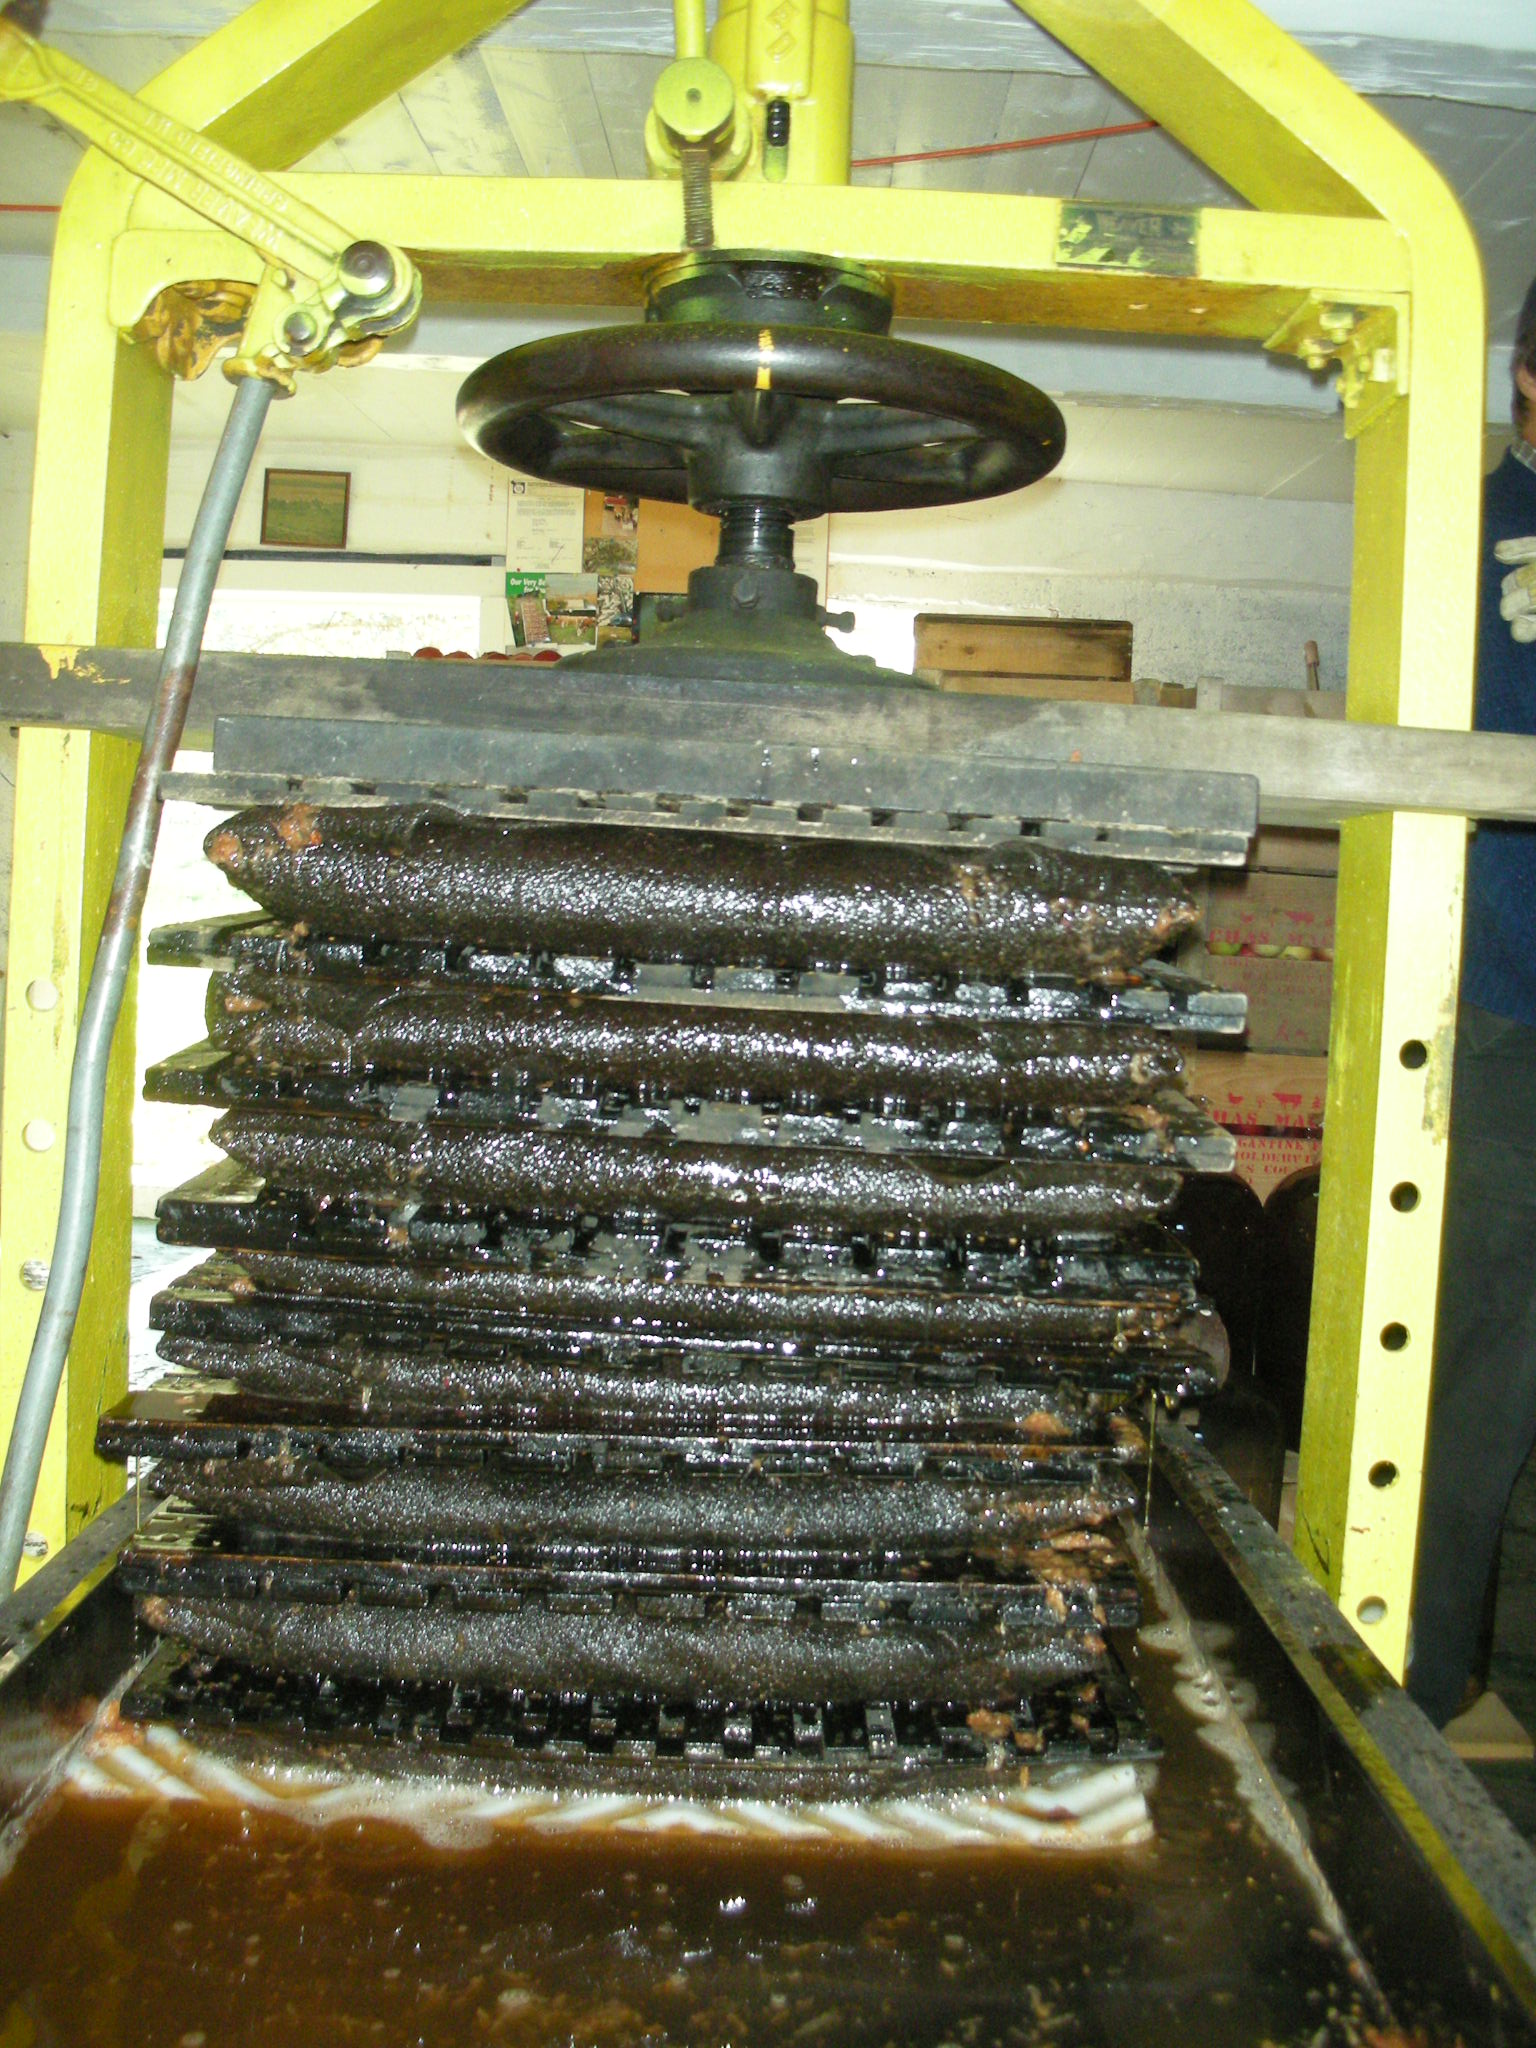 The Old Rack and Cloth Press